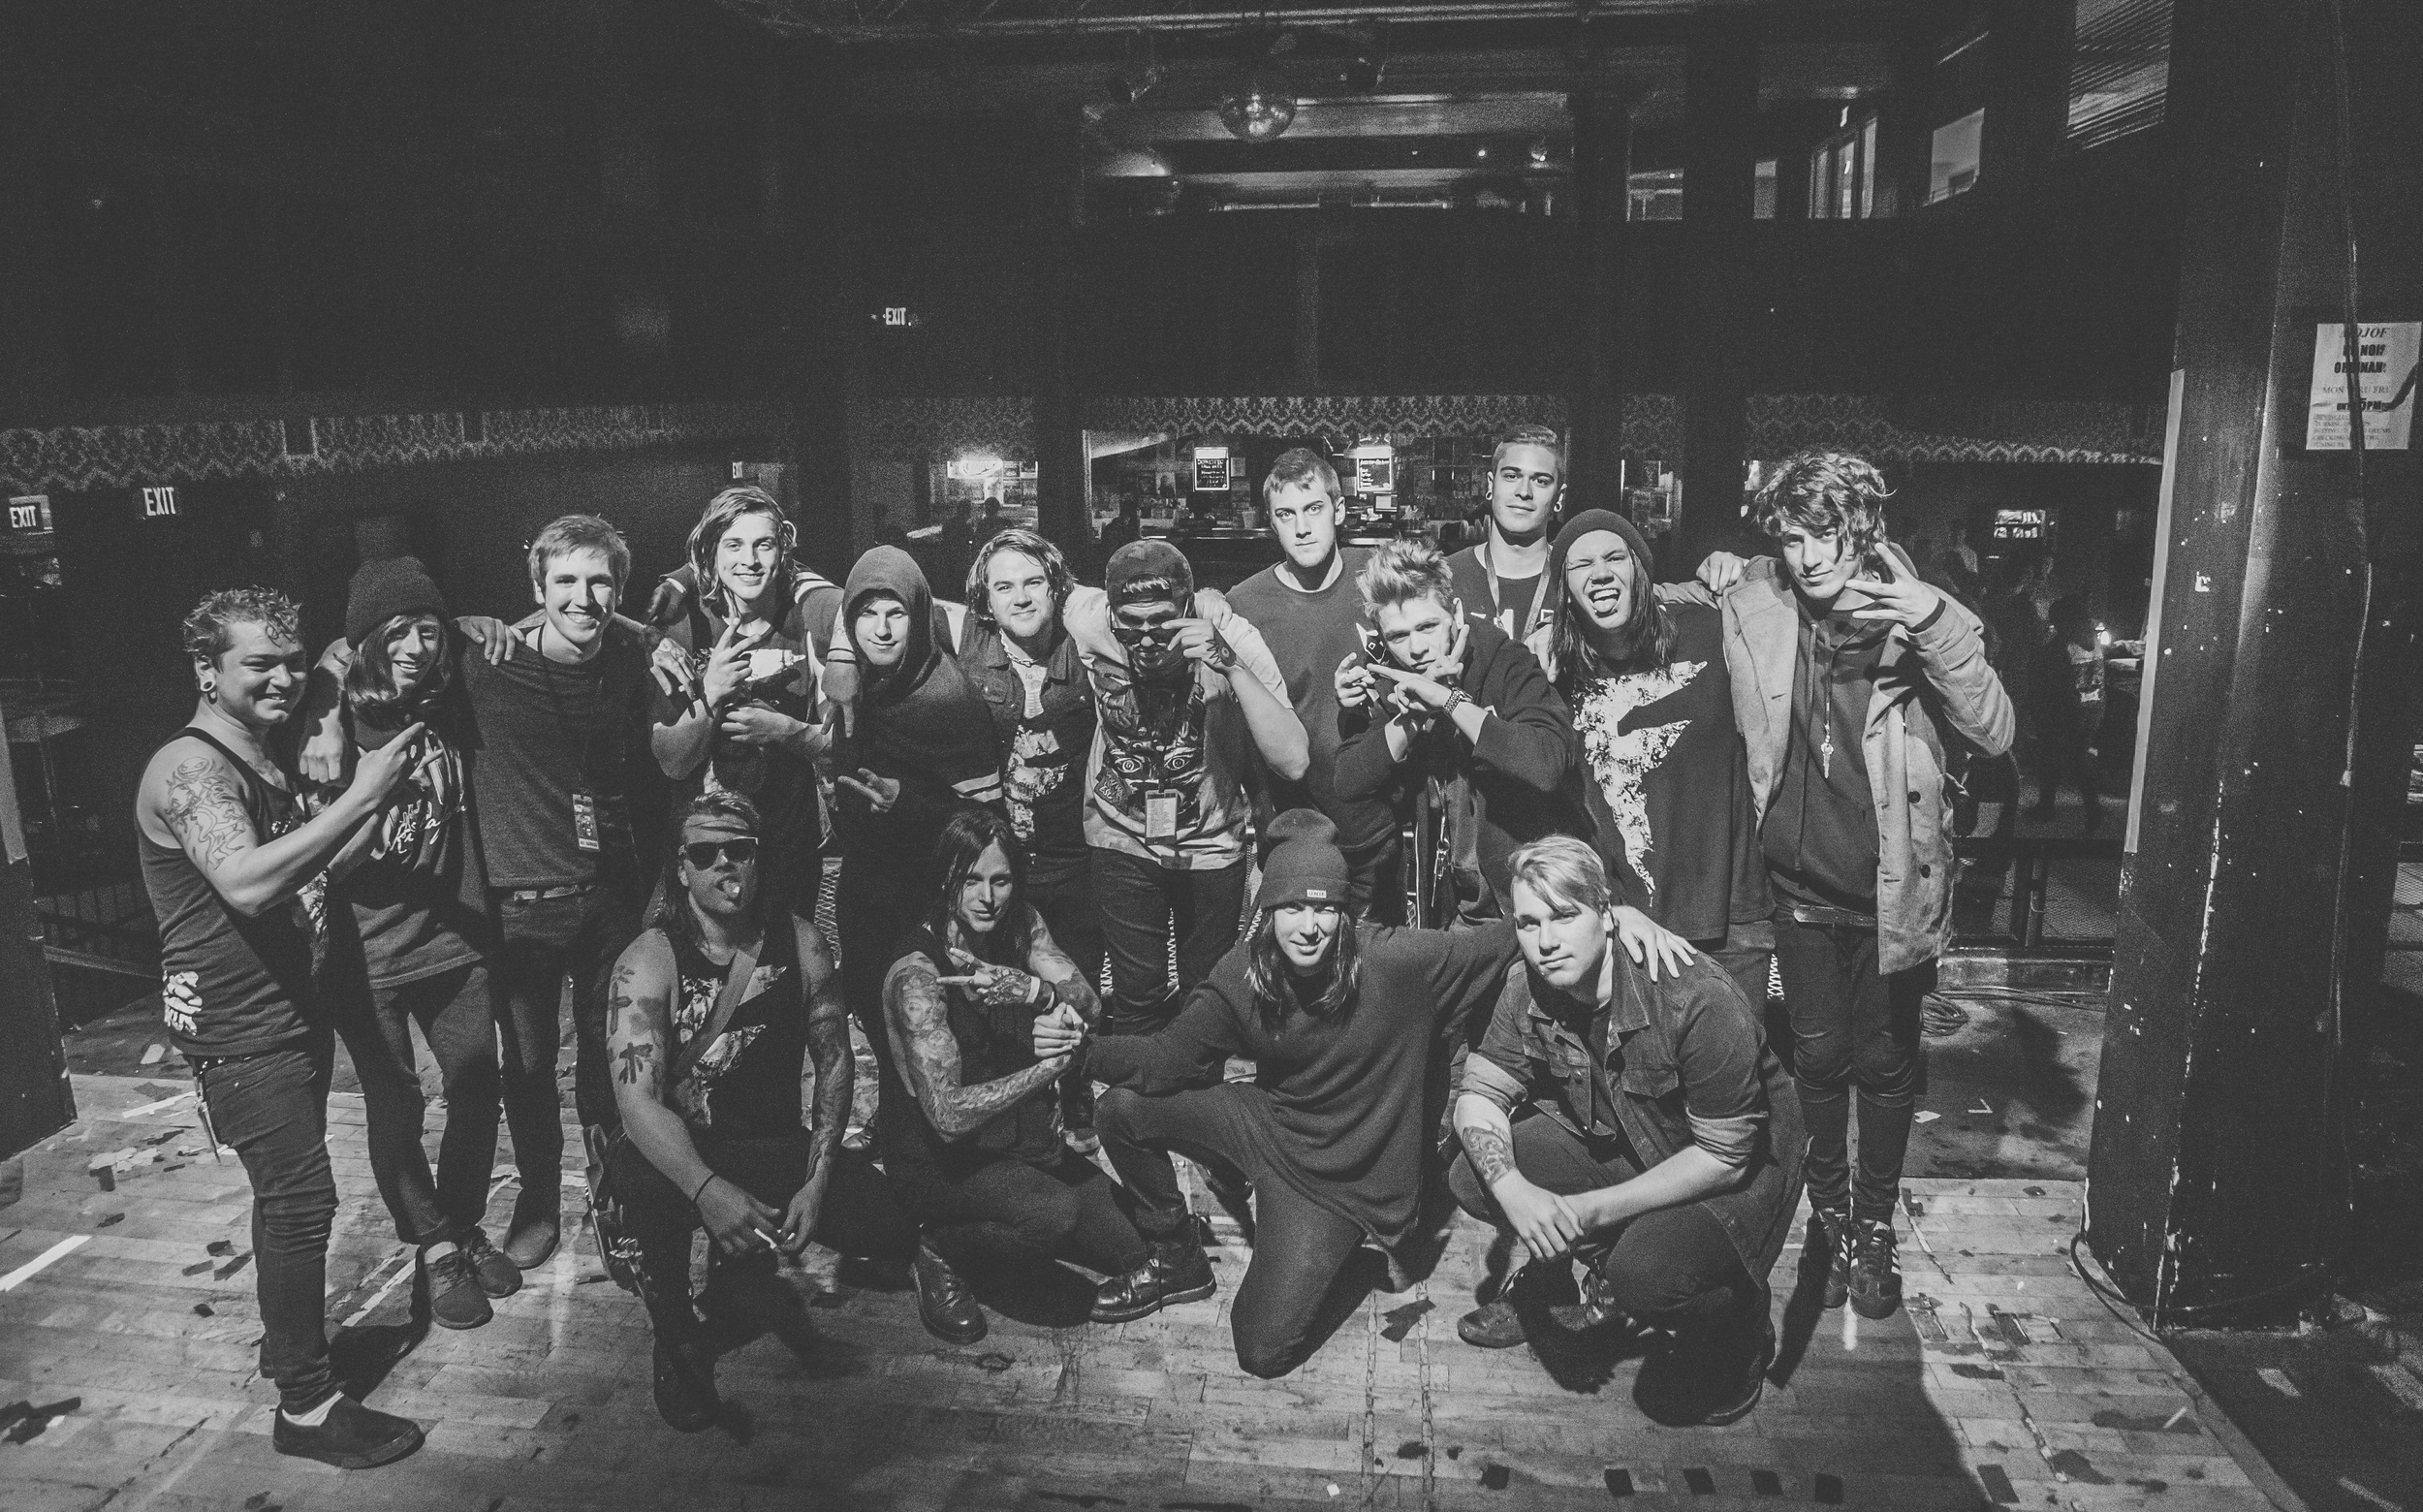 """Band / Crew of """"The Touring Dead"""" Tour // For All I Am, Tear Out The Heart, Famous Last Words"""